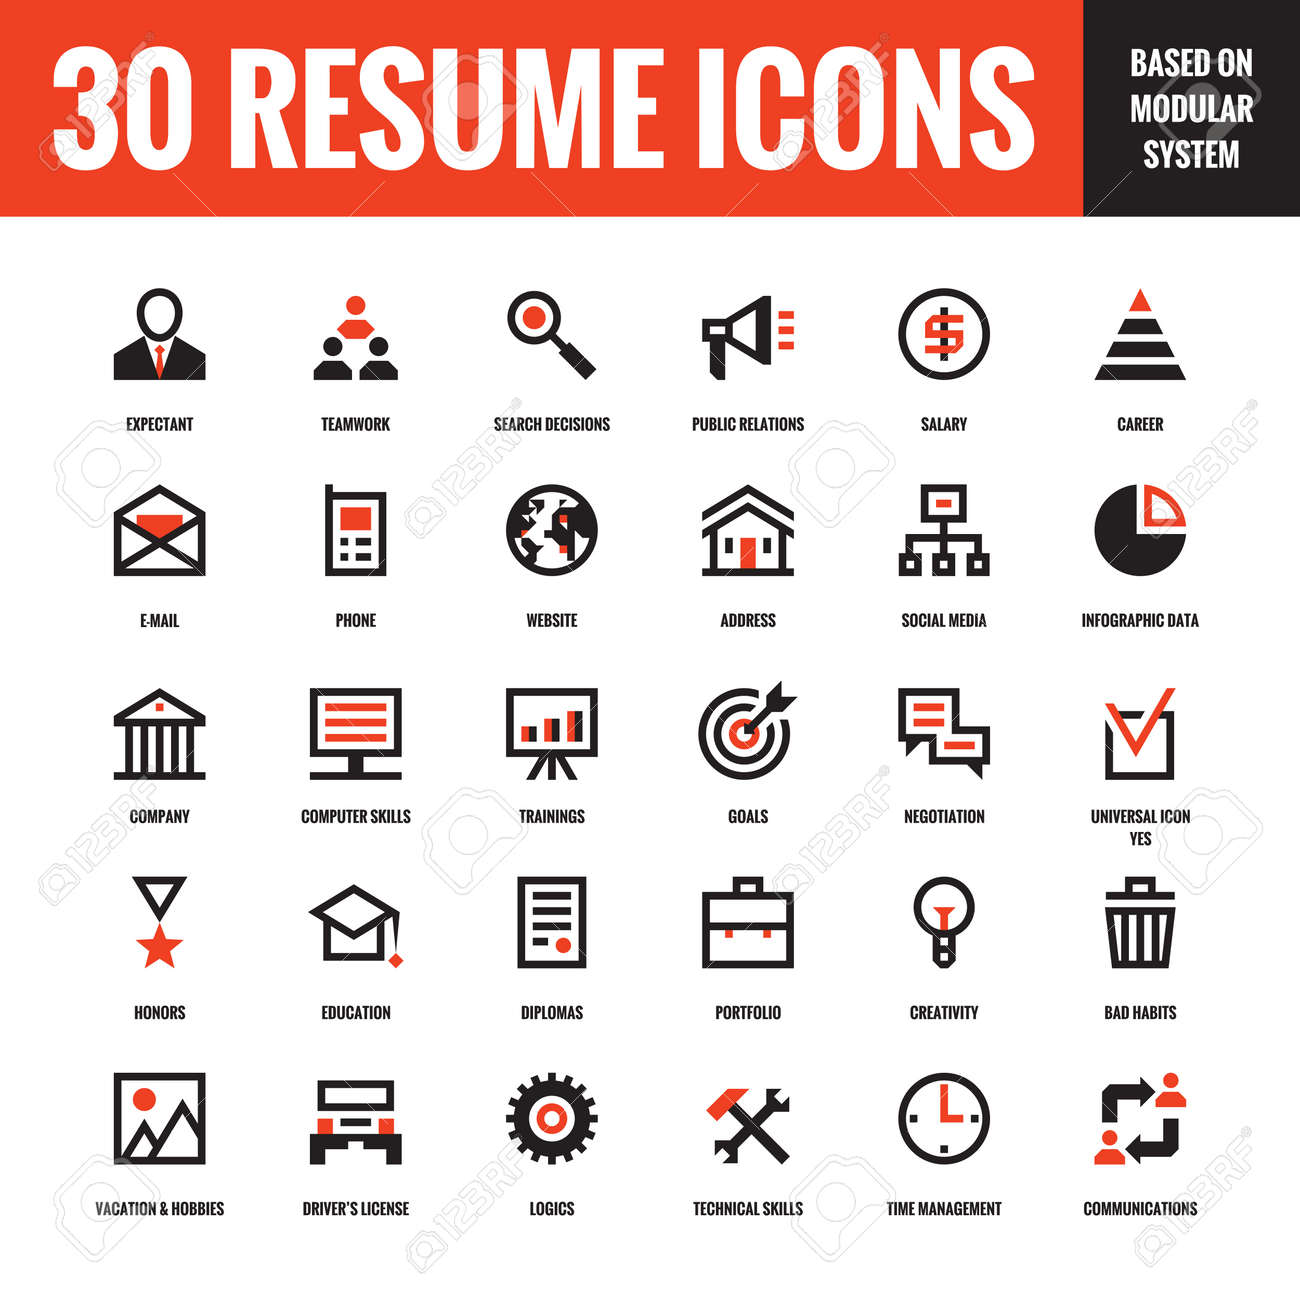 30 resume creative vector icons based on modular system. set